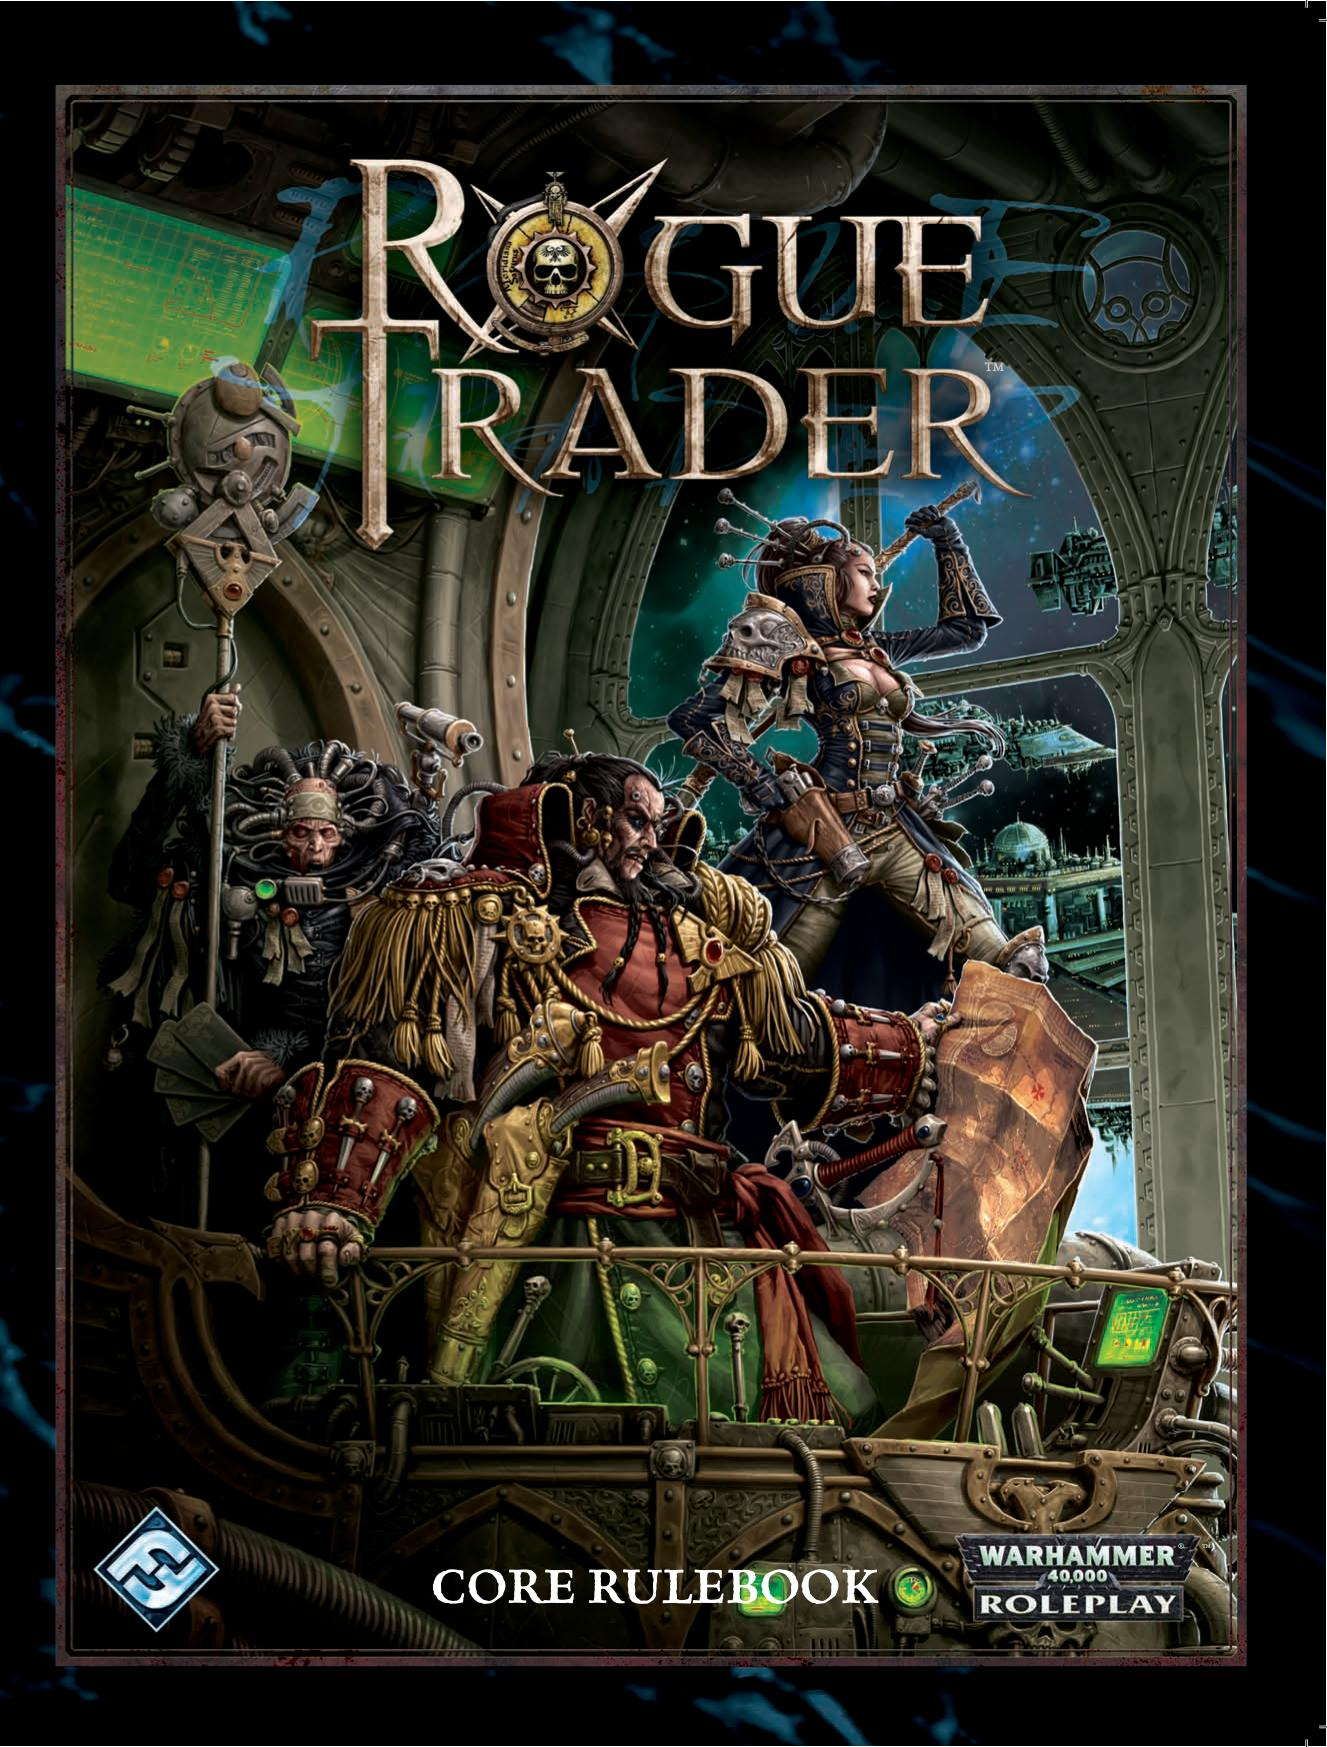 rogue trader rogue trader core rulebook core 40k rpg tools rogue trader core rulebook core